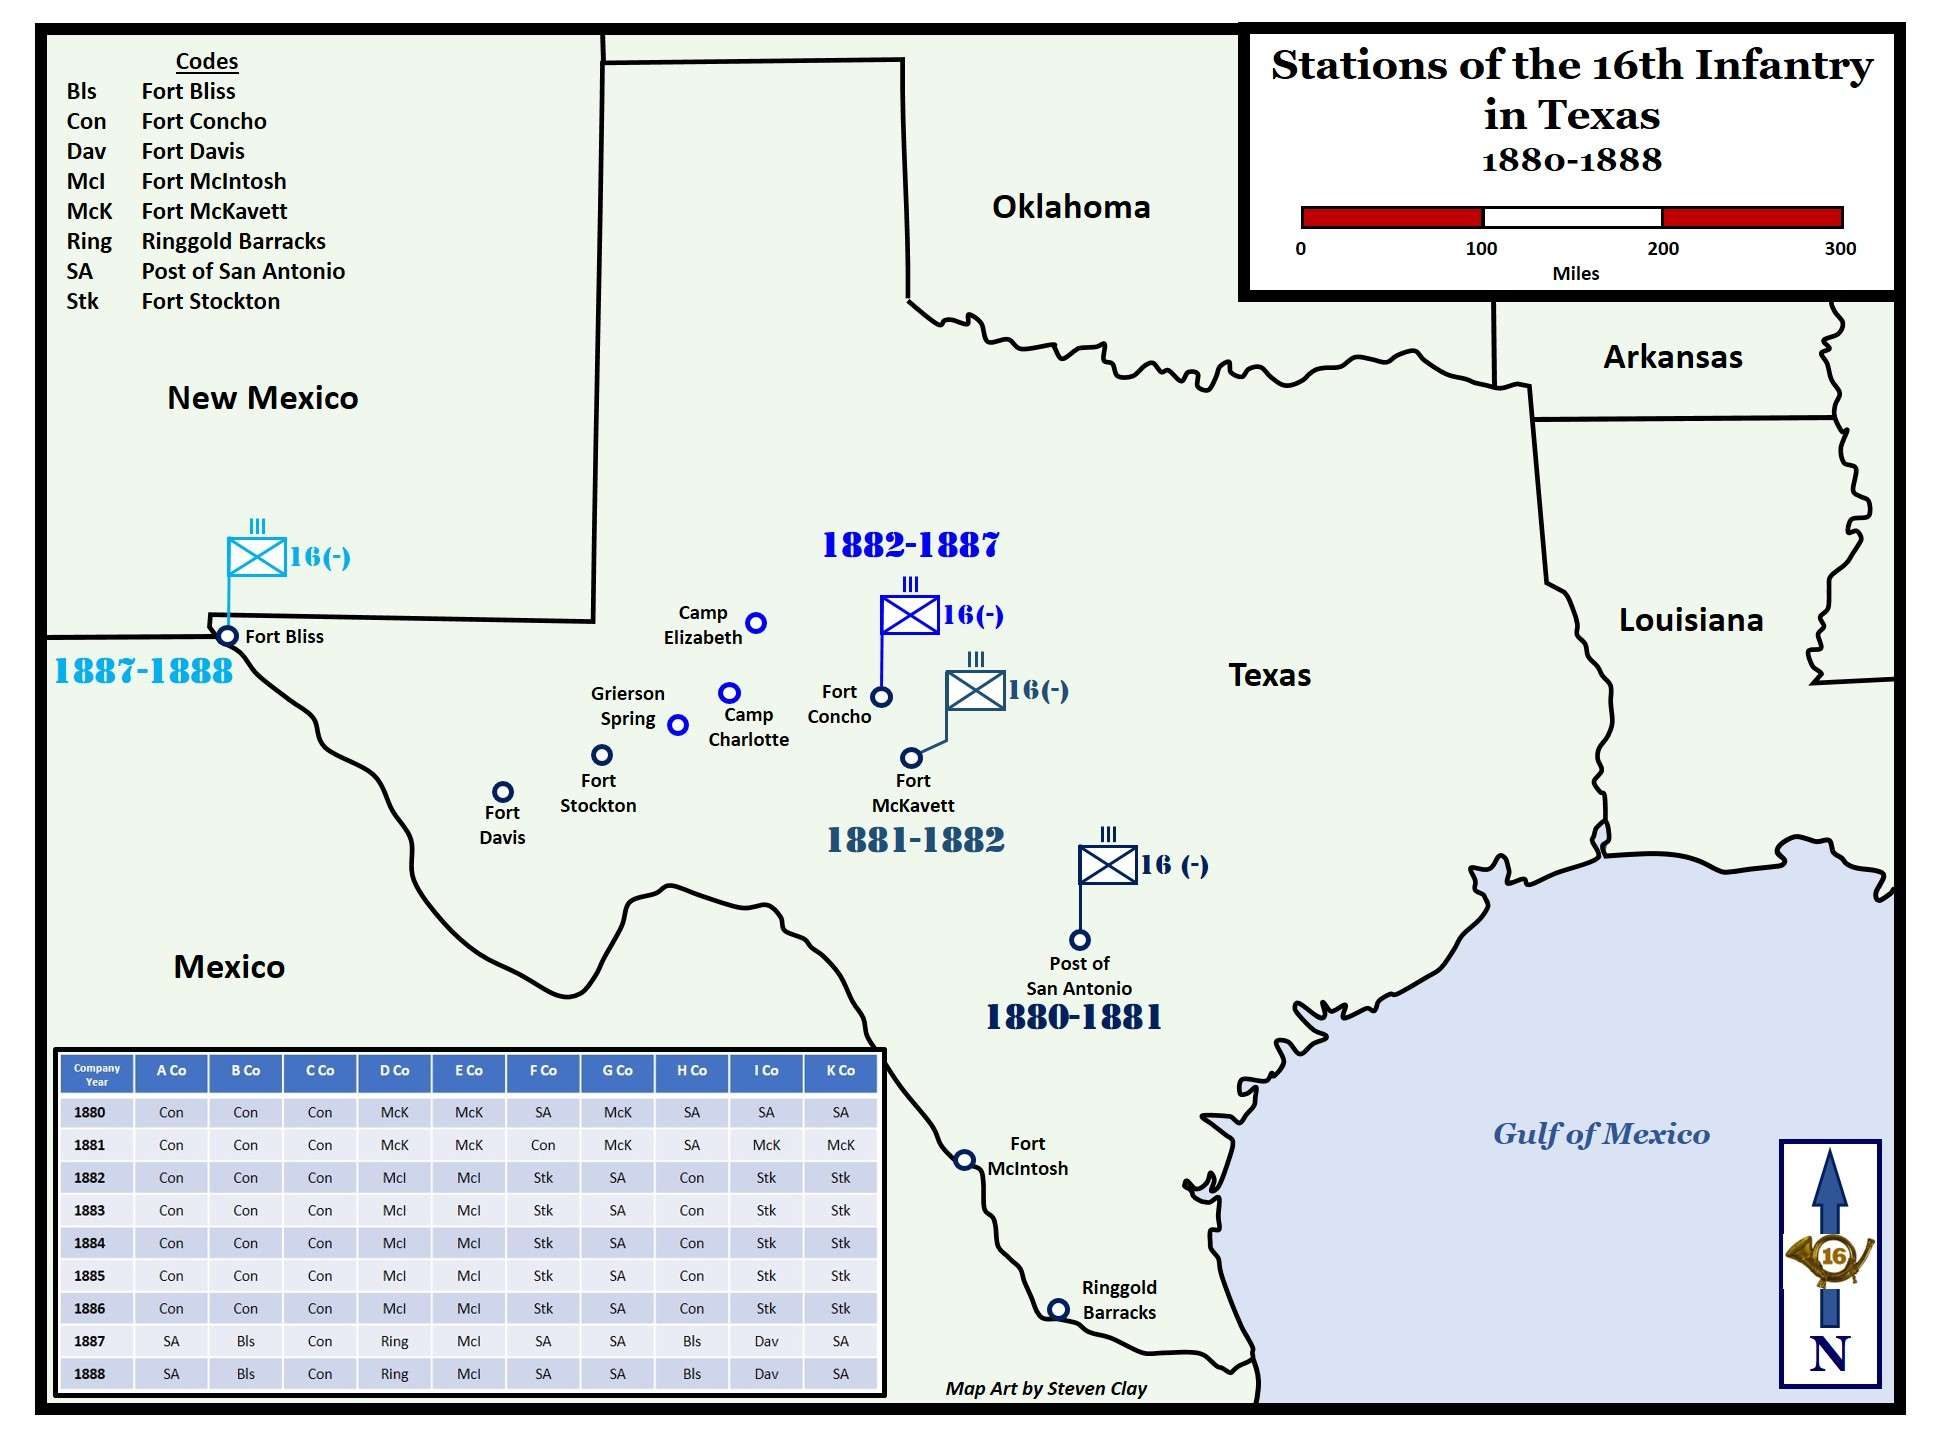 Stations of the 16th Infantry in Texas 1880-1888 – 16th ... on 1880 colorado map, 1880 new york map, 1880 missouri map, 1880 ohio map, 1880 wisconsin map, 1880 kansas map, 1880 mexico map, 1880 arizona map, 1880 michigan map, 1880 kentucky map, 1880 europe map, 1880 texas map, 1880 nebraska map, 1880 dallas map, 1880 oklahoma map, 1880 idaho map, 1880 south dakota map, 1880 denver map, 1880 louisiana map, 1880 world map,